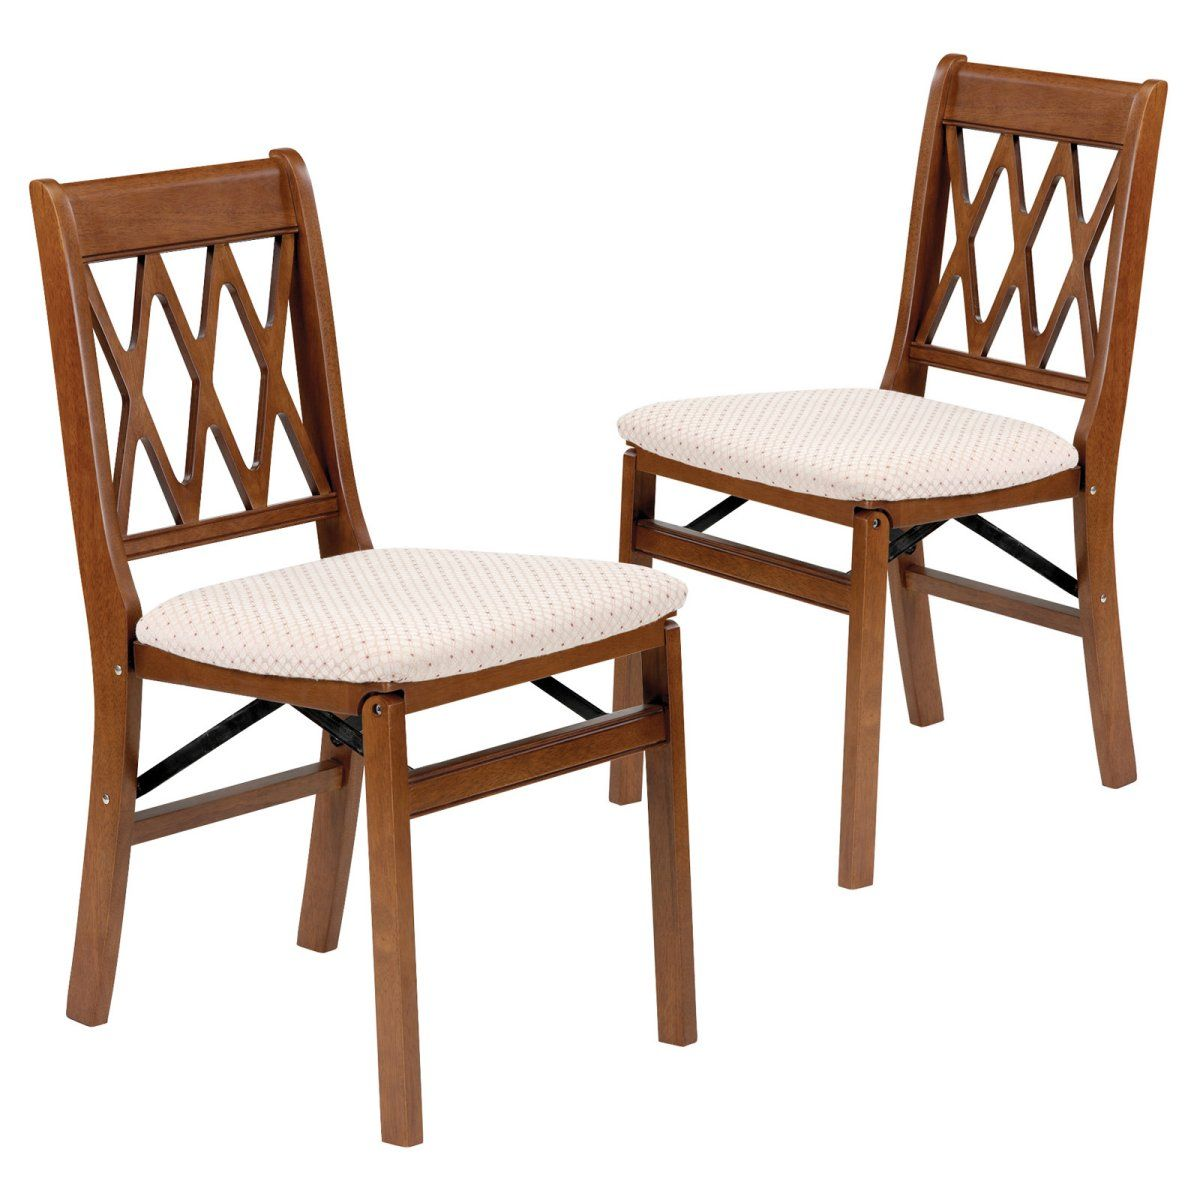 Stakmore Lattice Back Wood Folding Chairs With Upholstered